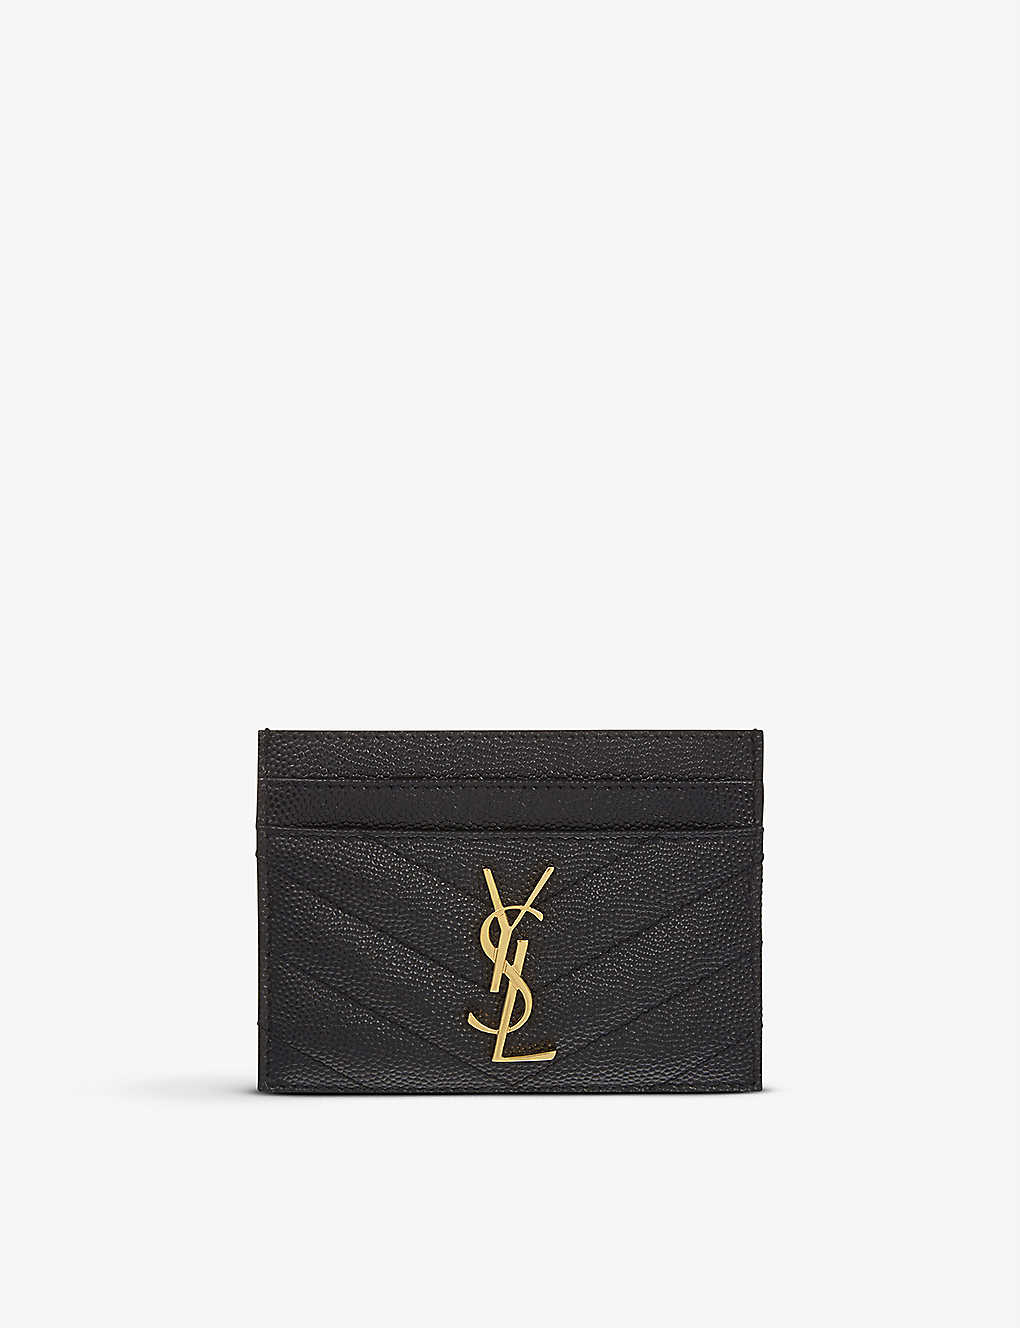 SAINT LAURENT - Monogram quilted leather card holder  45c4751d87